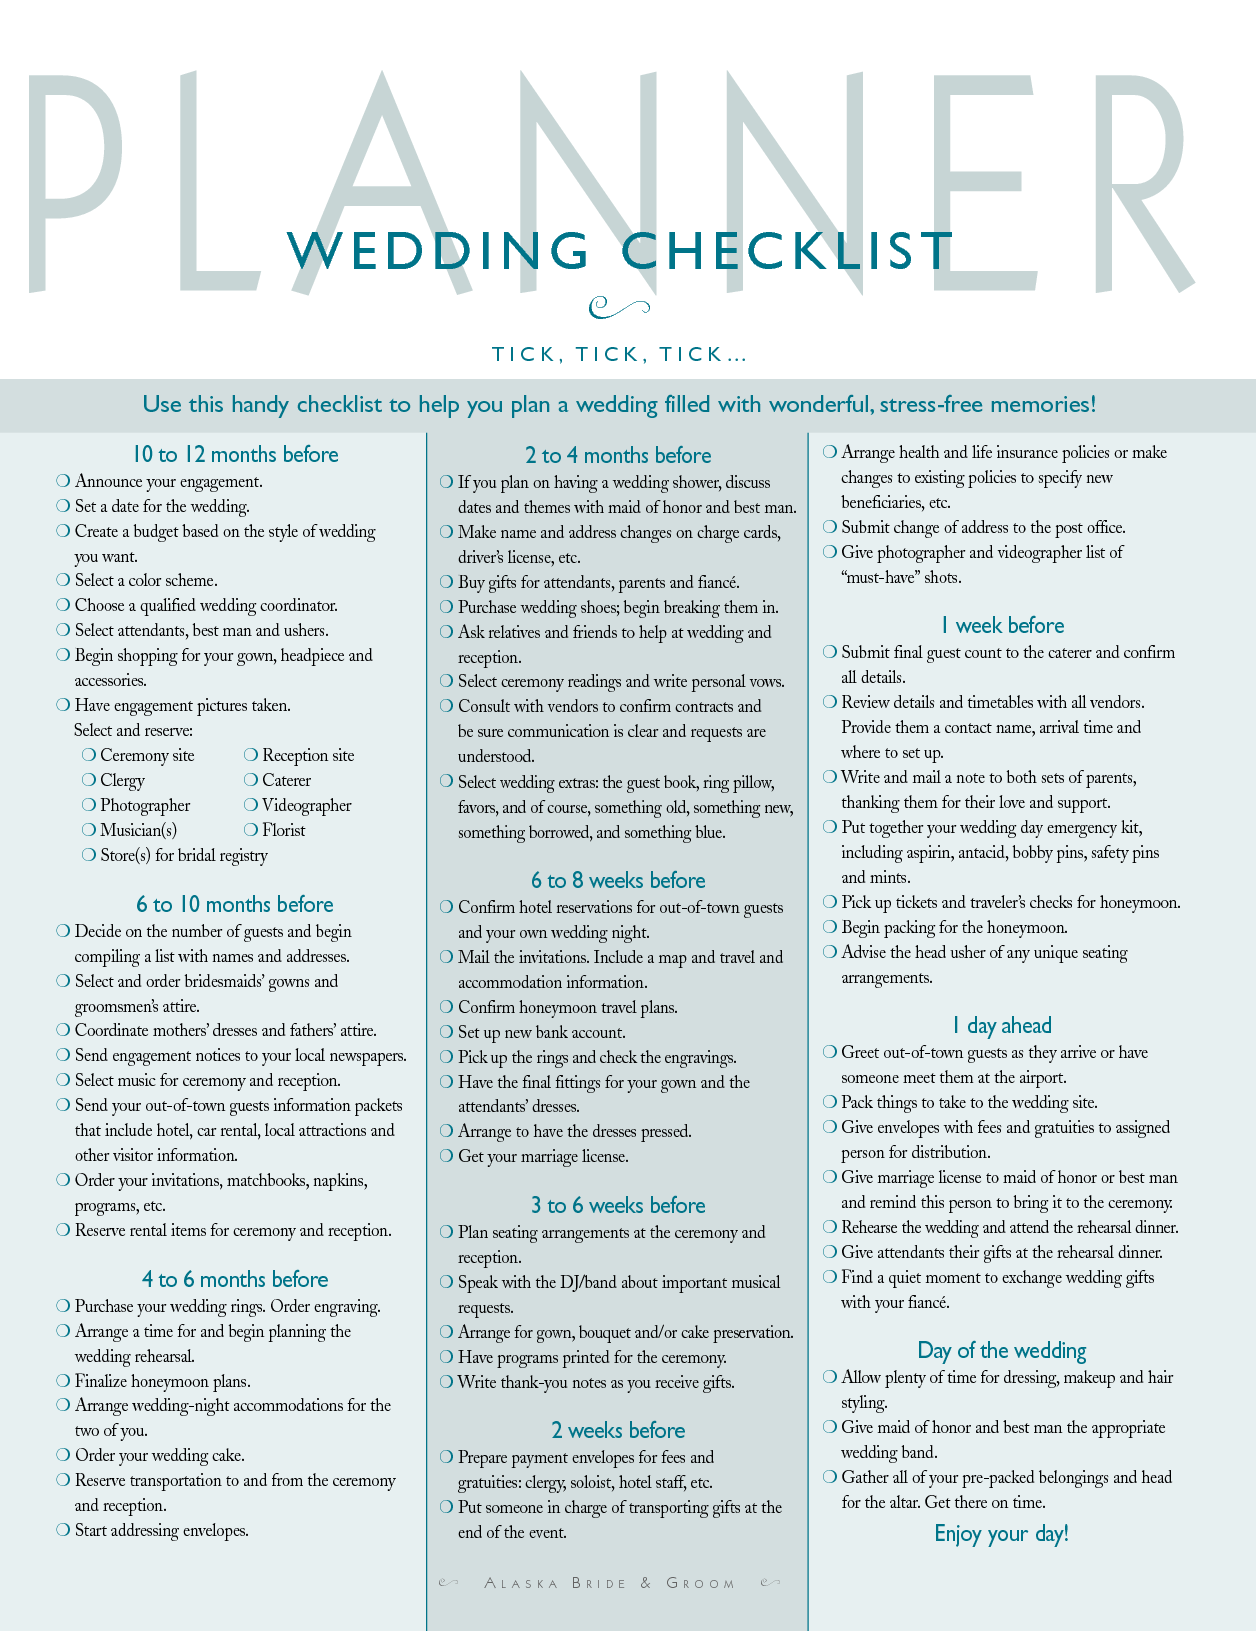 17 Best images about Wedding Checklists on Pinterest | Week by ...